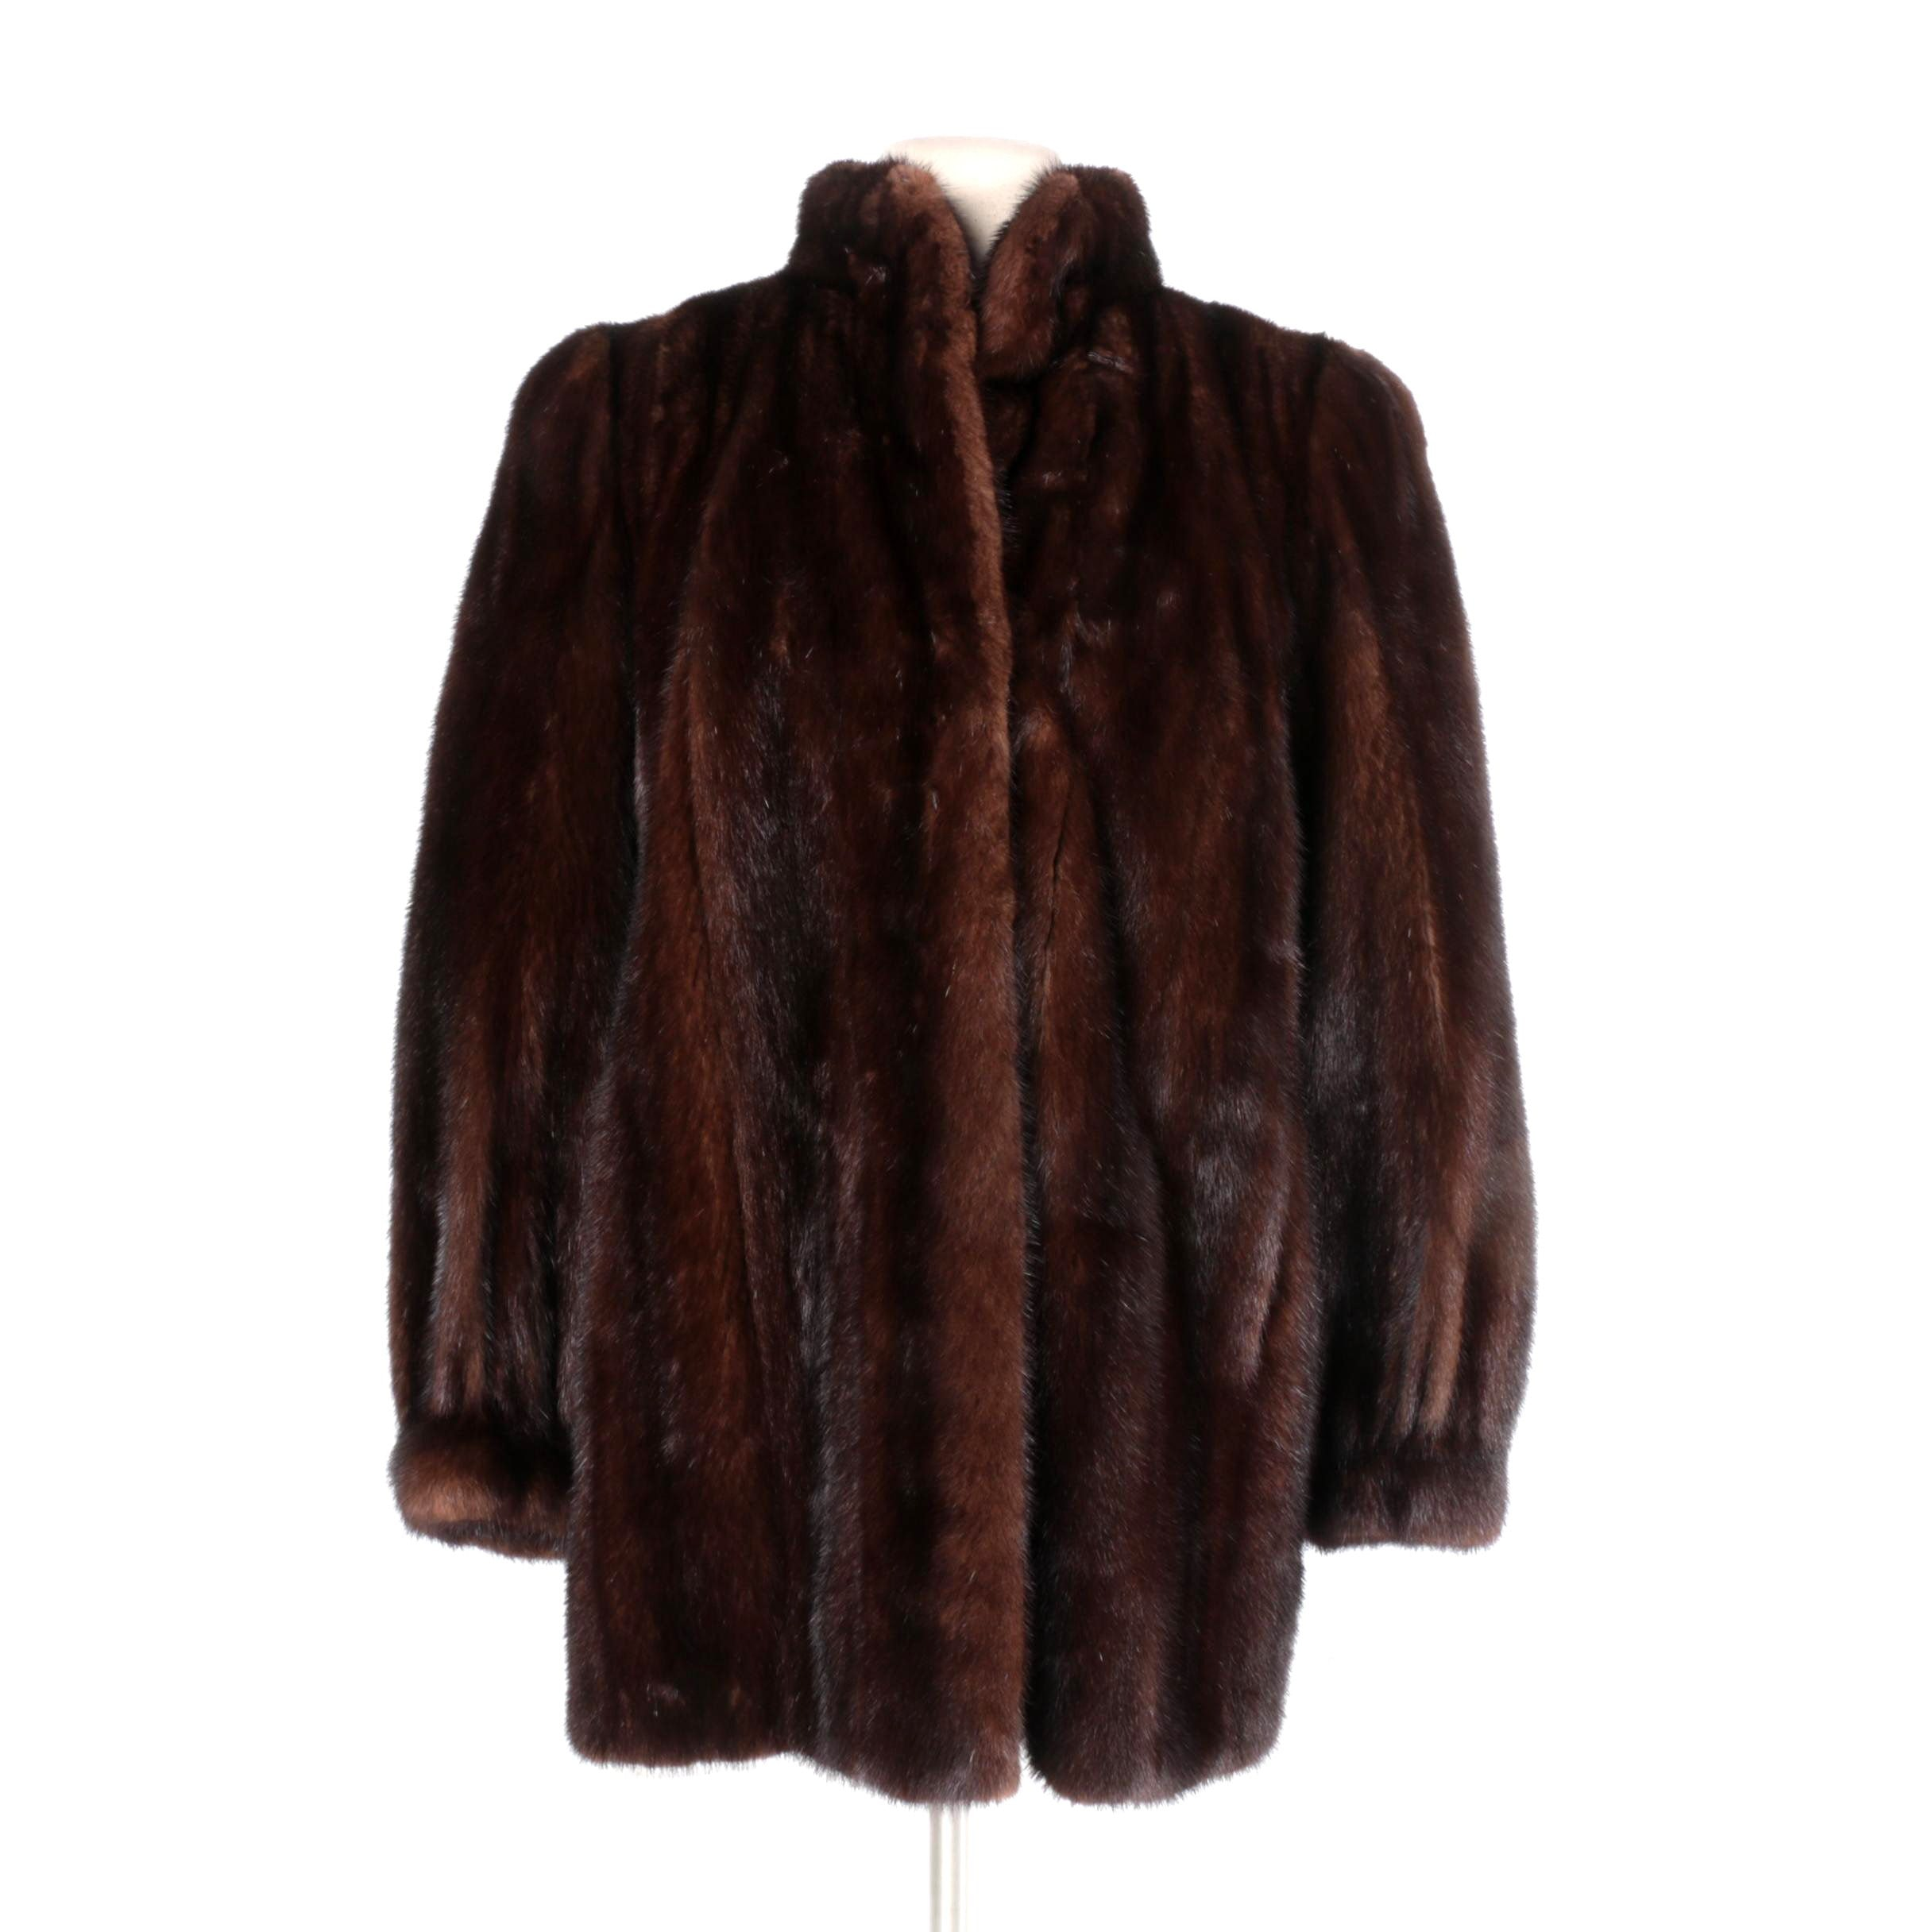 Vintage Christian Dior Fourrure Mink Fur Coat